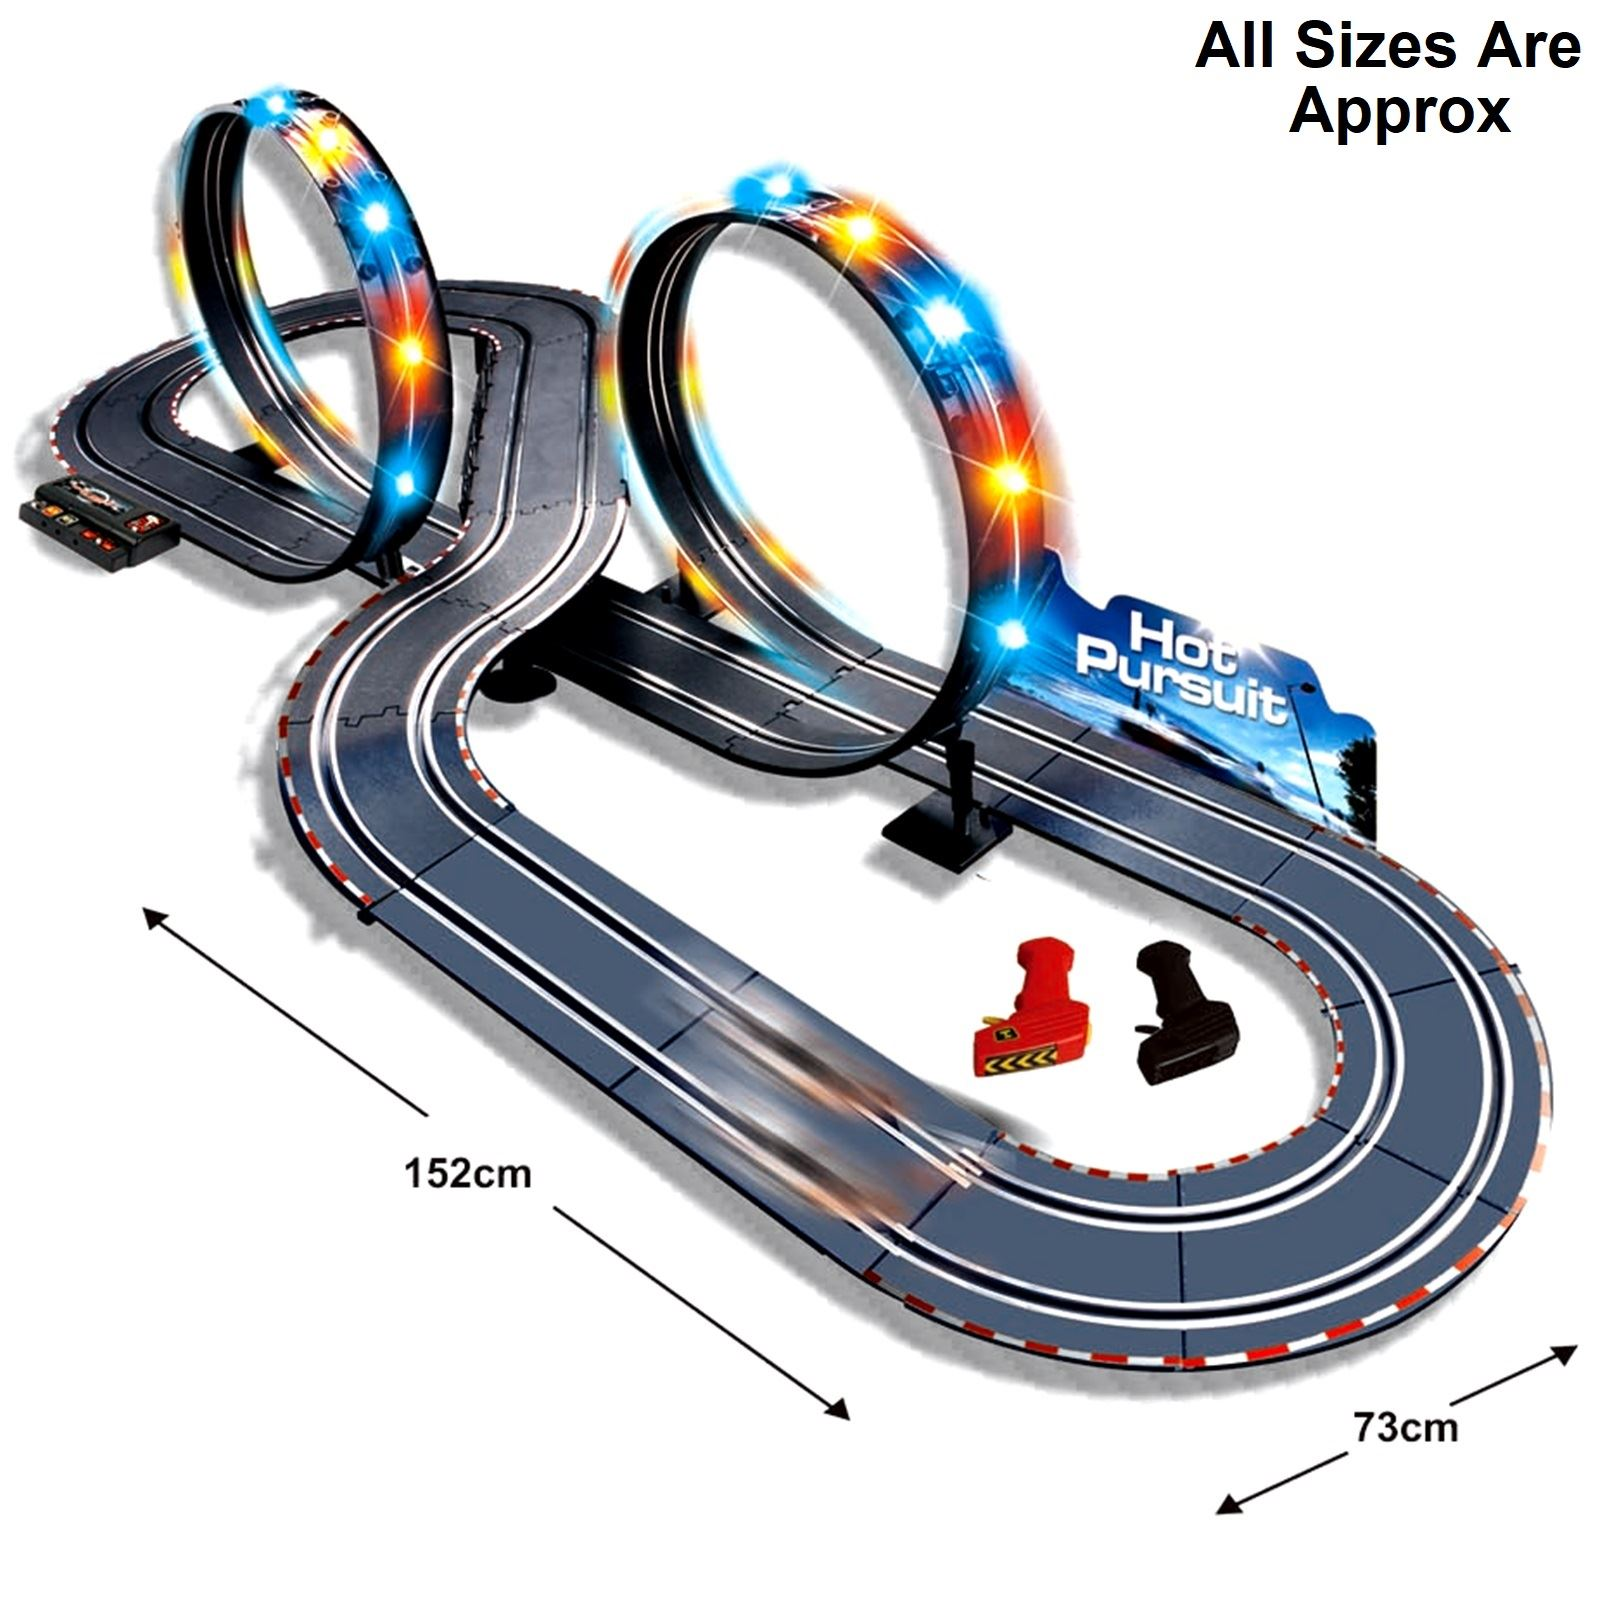 A perfect race car track designed for use by little kids is Carrera First Disney/Pixar Cars 3 – Slot Car Race Track.The track offers feet of racing distance.It features a themed decor which makes it appealing to look at.Furthermore, the set includes two cars - a Lightning McQueen car and a .